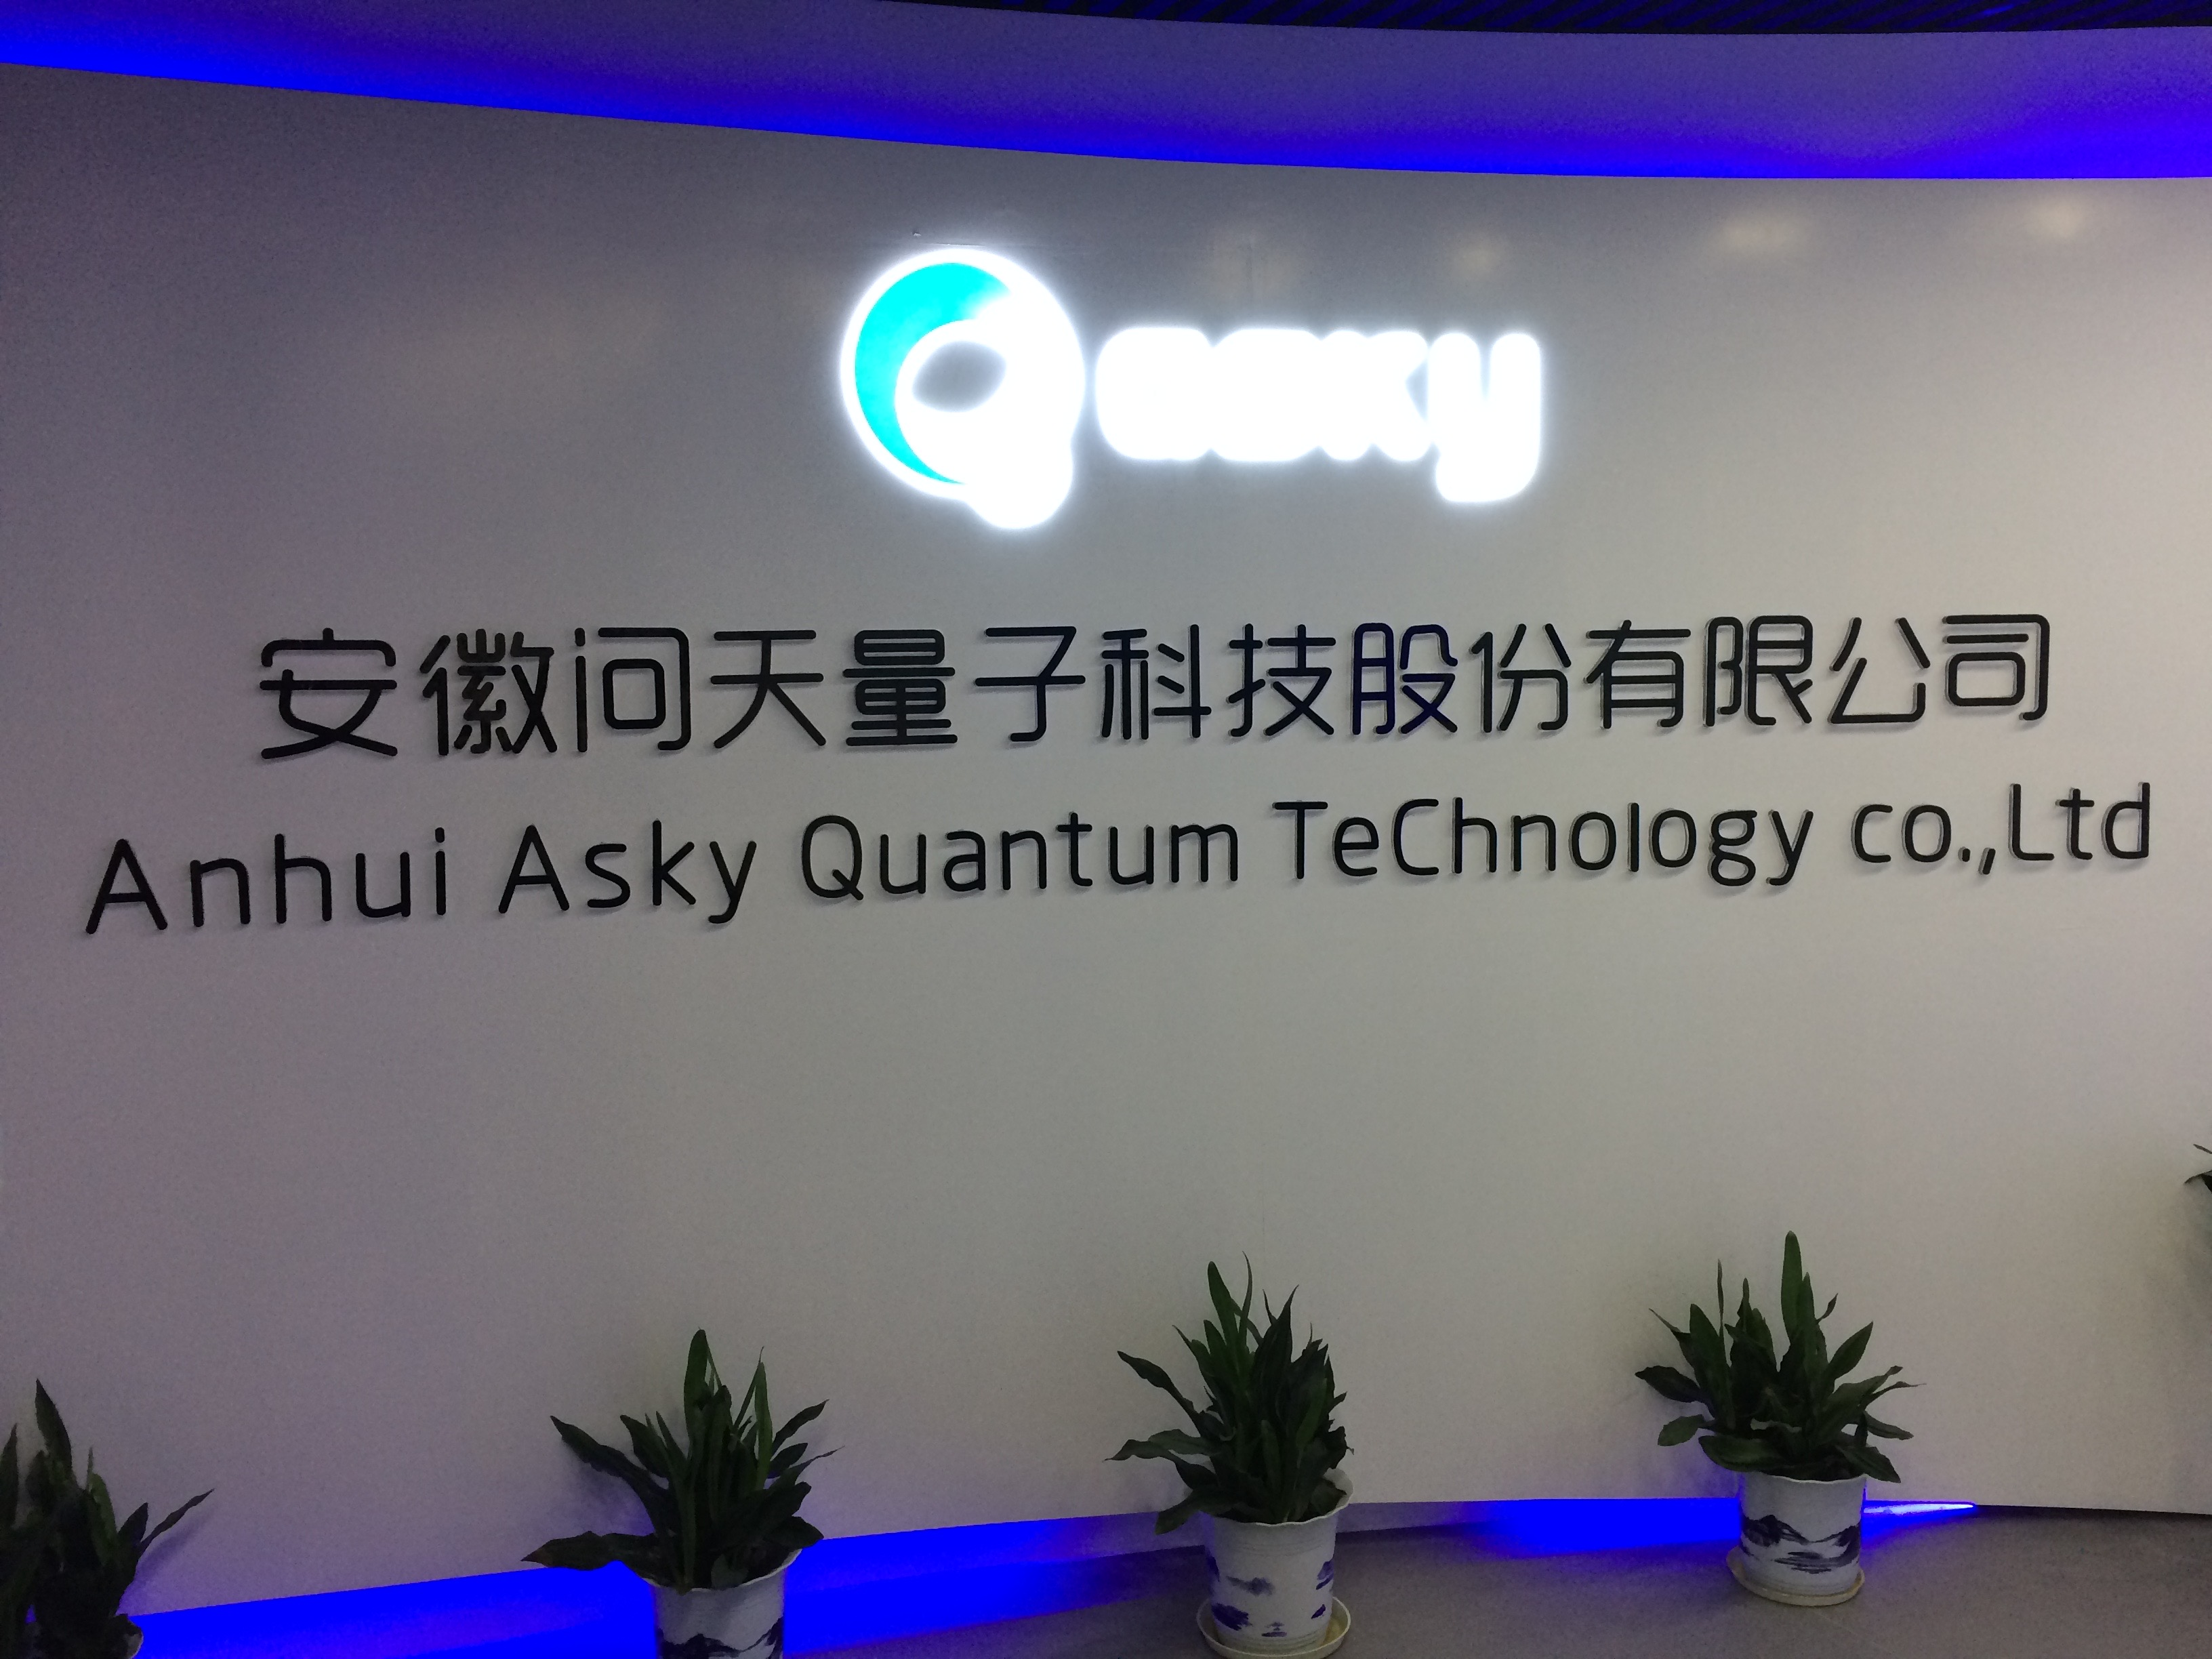 High tech quantum company